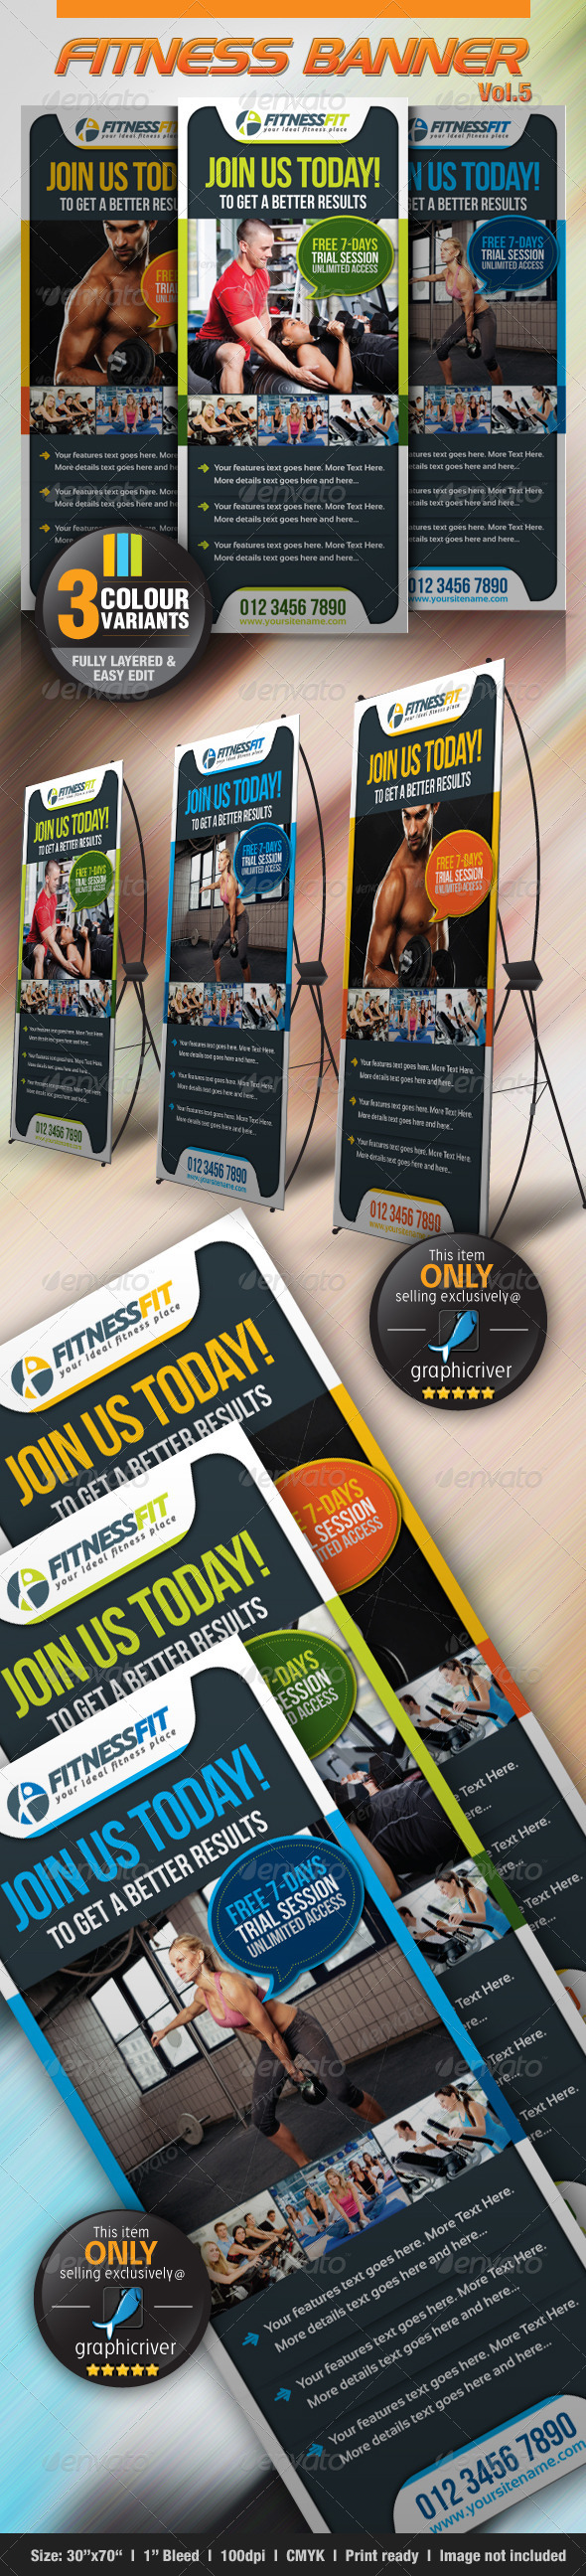 GraphicRiver Fitness Banner Vol.5 3852094